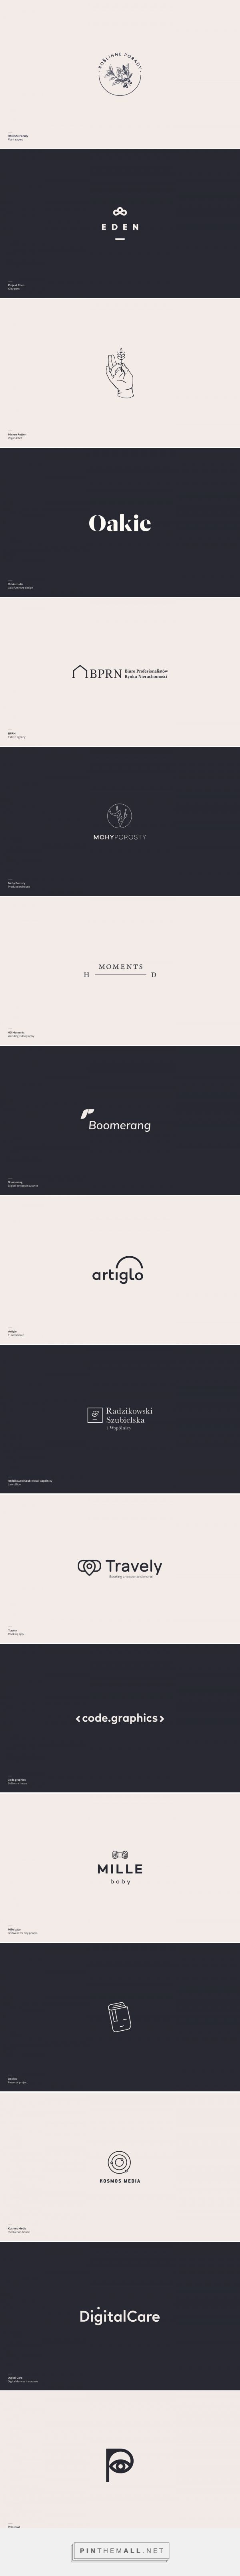 Logo collection 2015—2017 on Behance created via s pinthemall